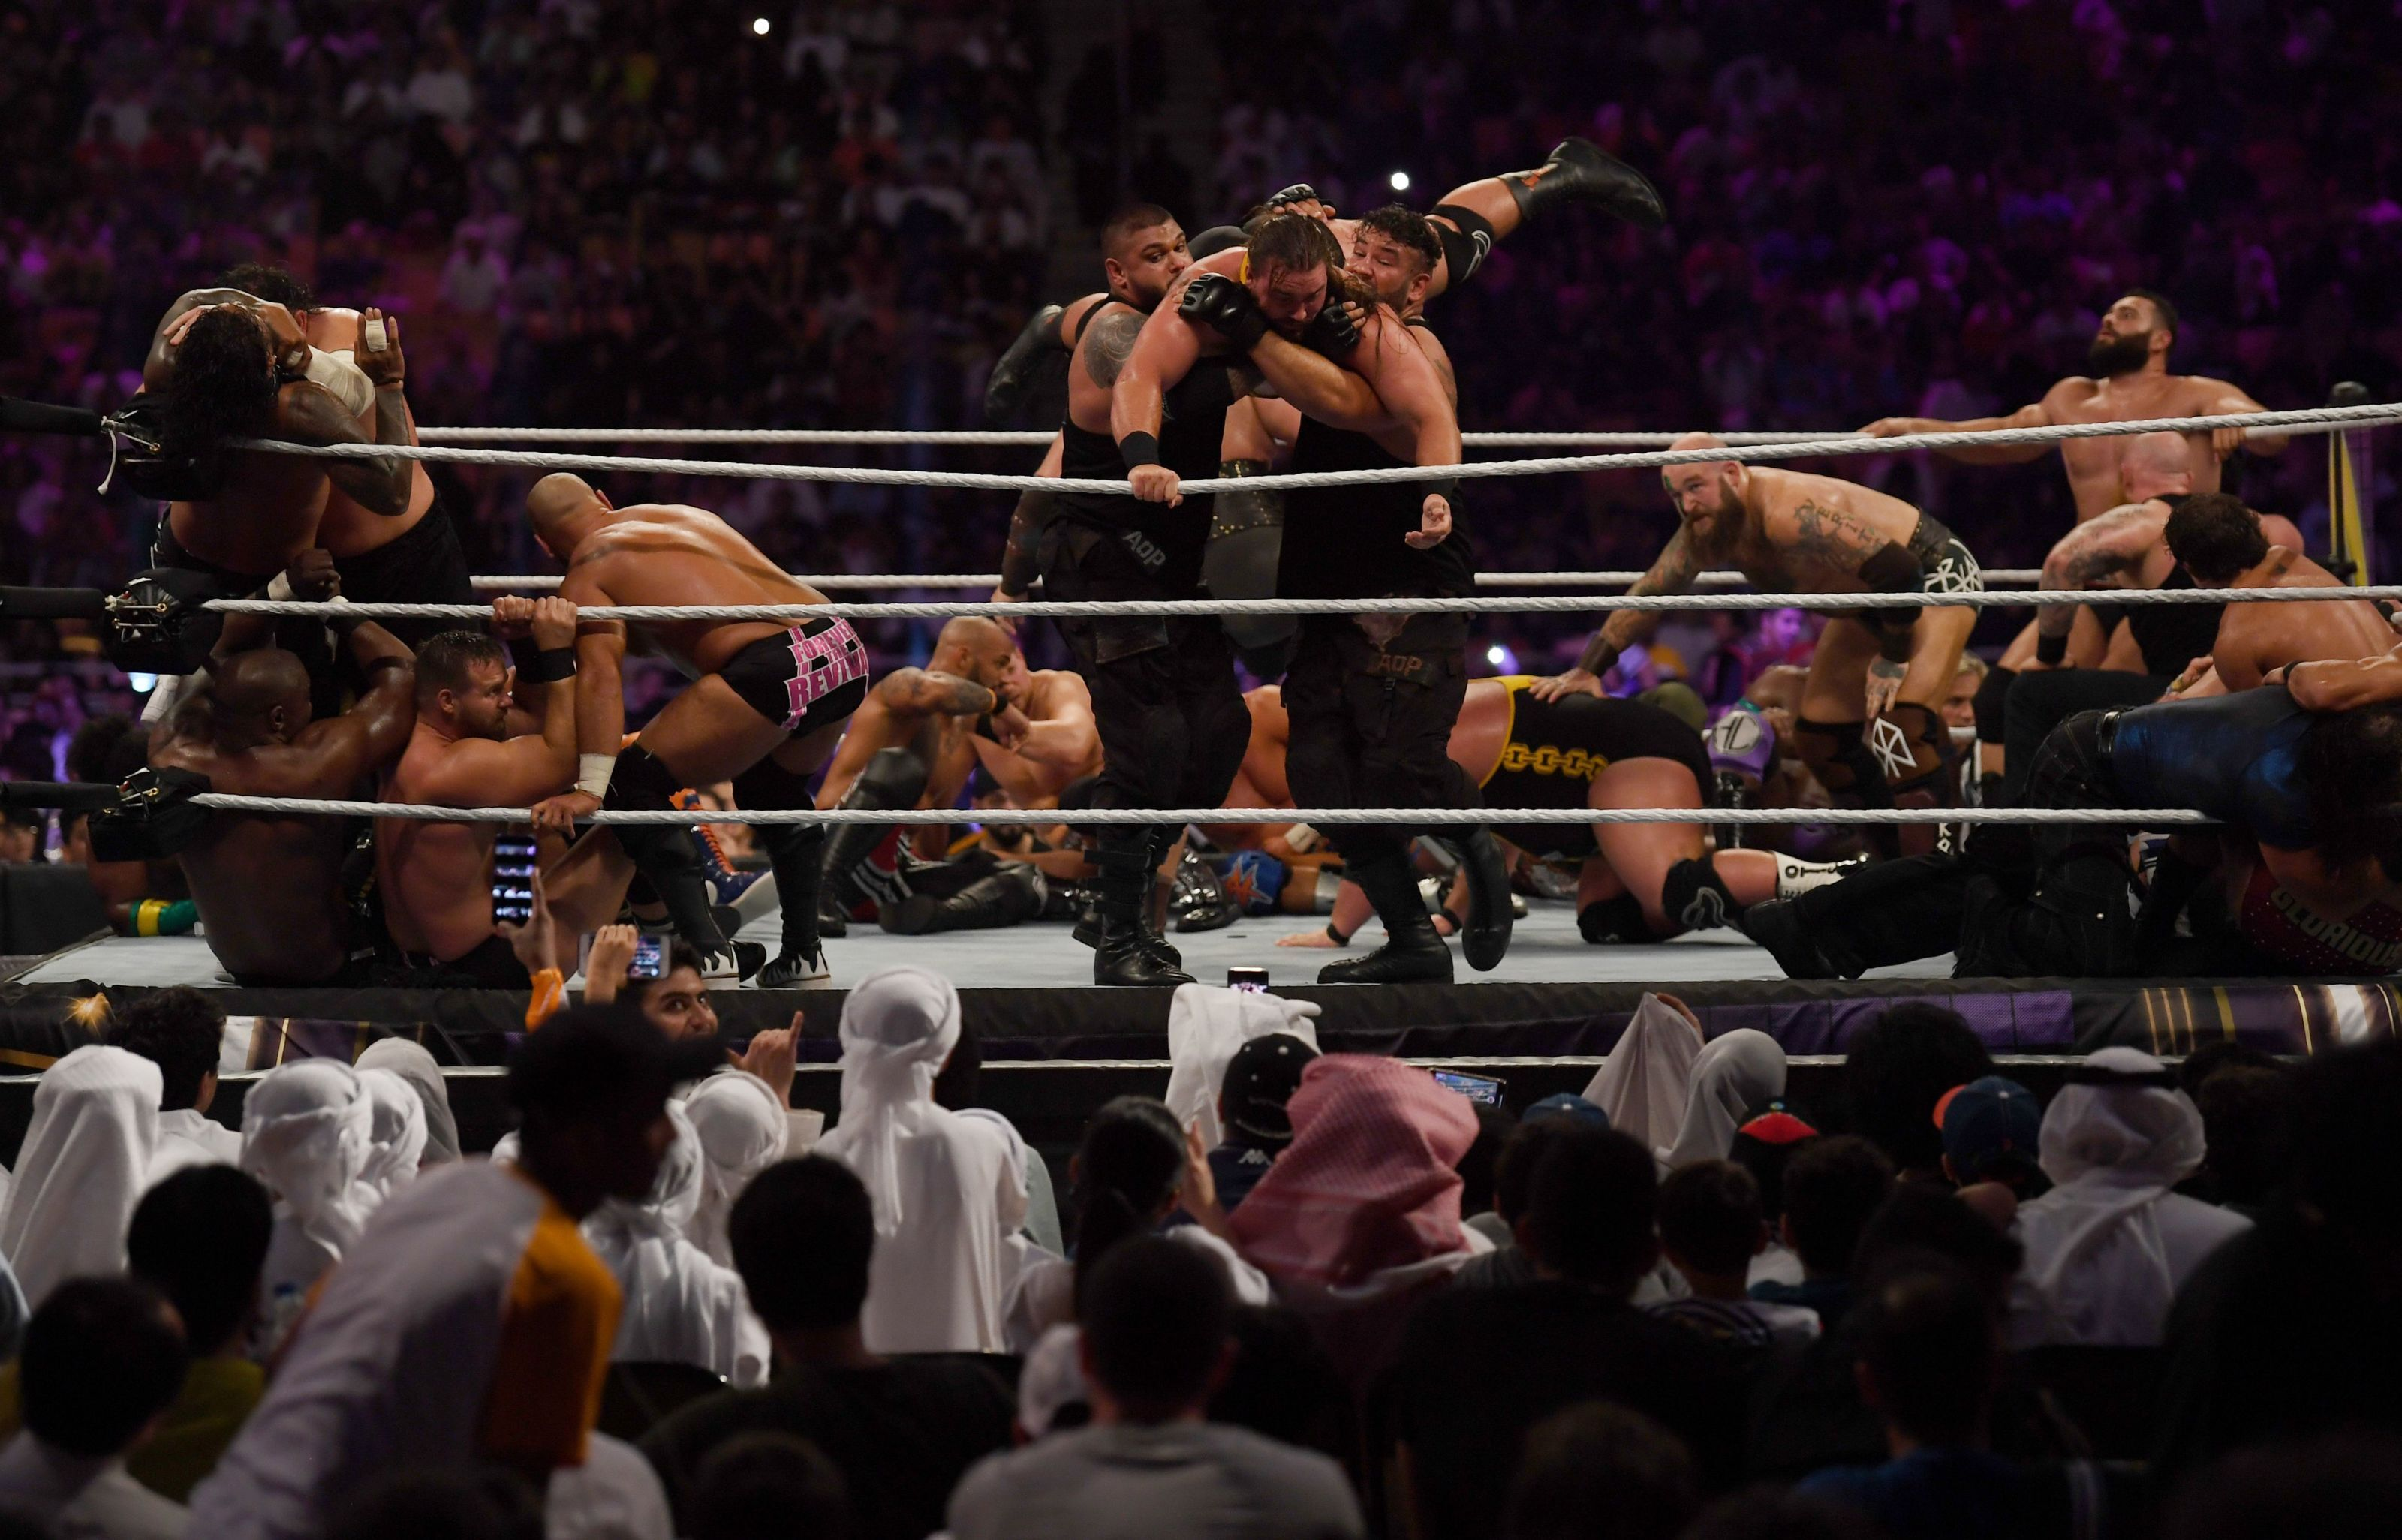 WWE Superstars wanting out won't change anything